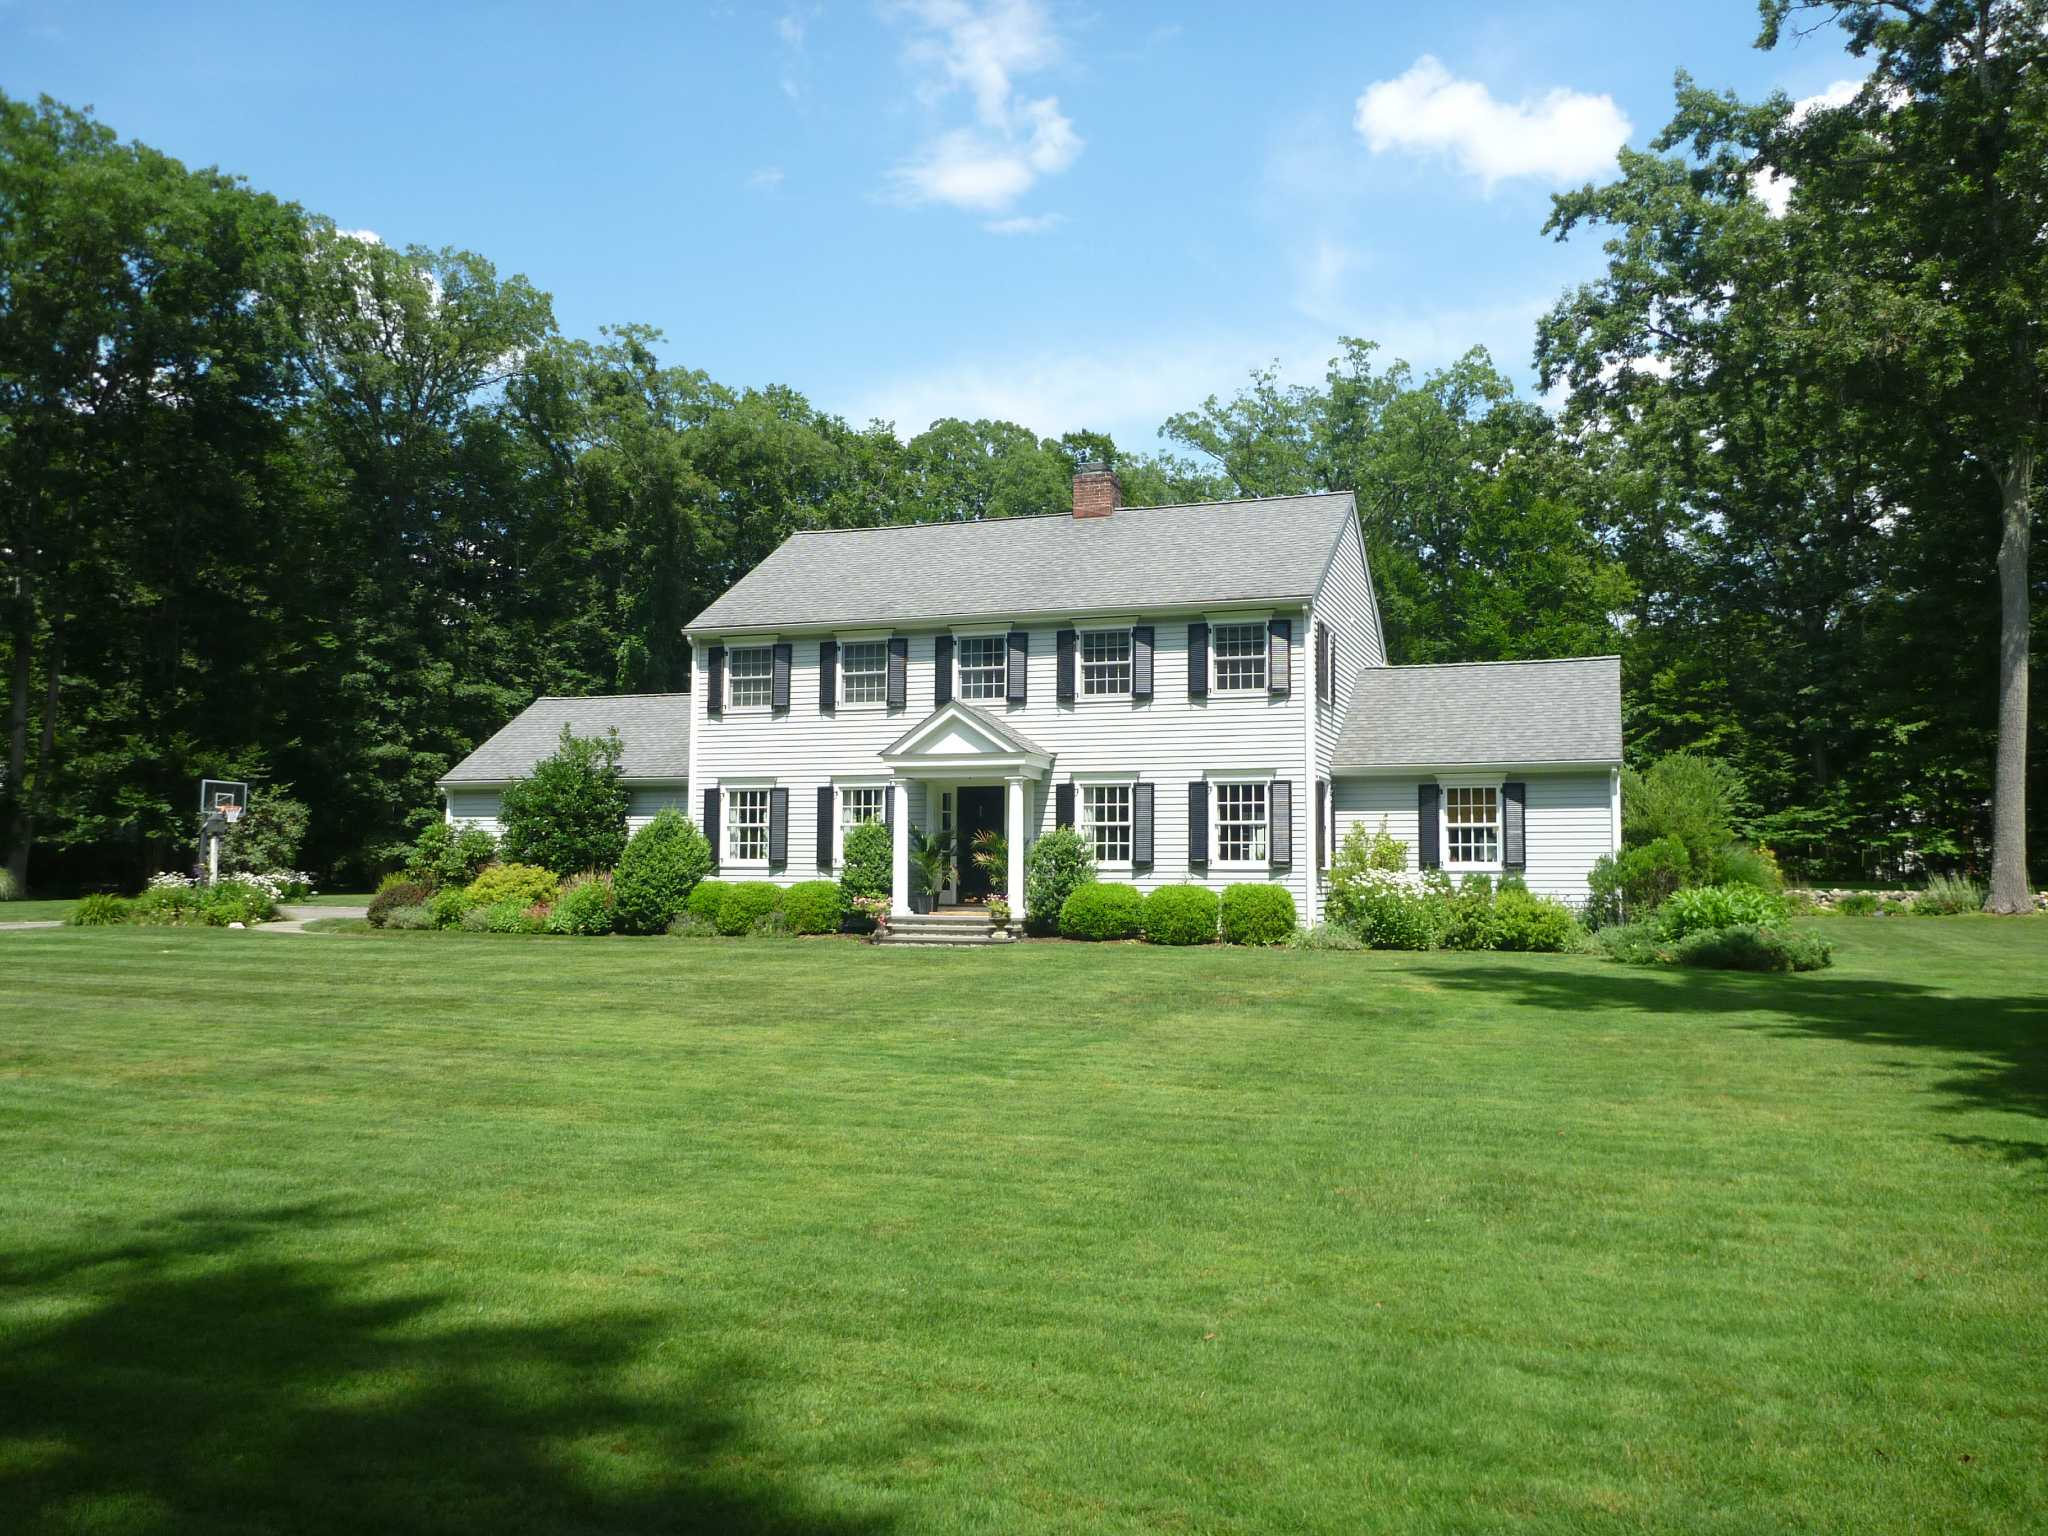 Colonial Real Estate : Real estate a connecticut colonial redesigned in darien